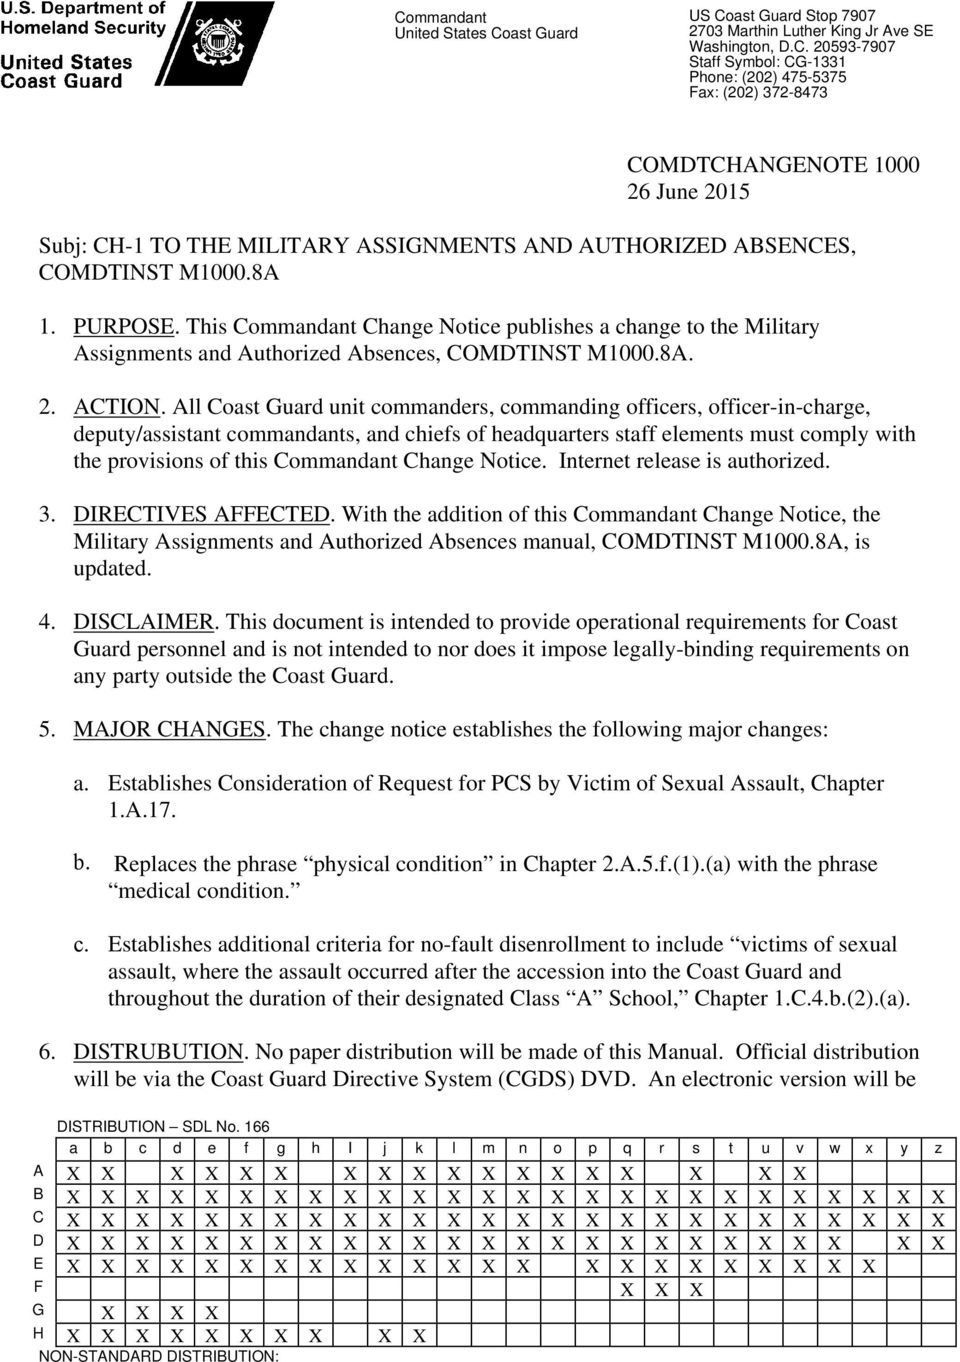 All Coast Guard unit commanders, commanding officers, officer-in-charge, deputy/assistant commandants, and chiefs of headquarters staff elements must comply with the provisions of this Commandant